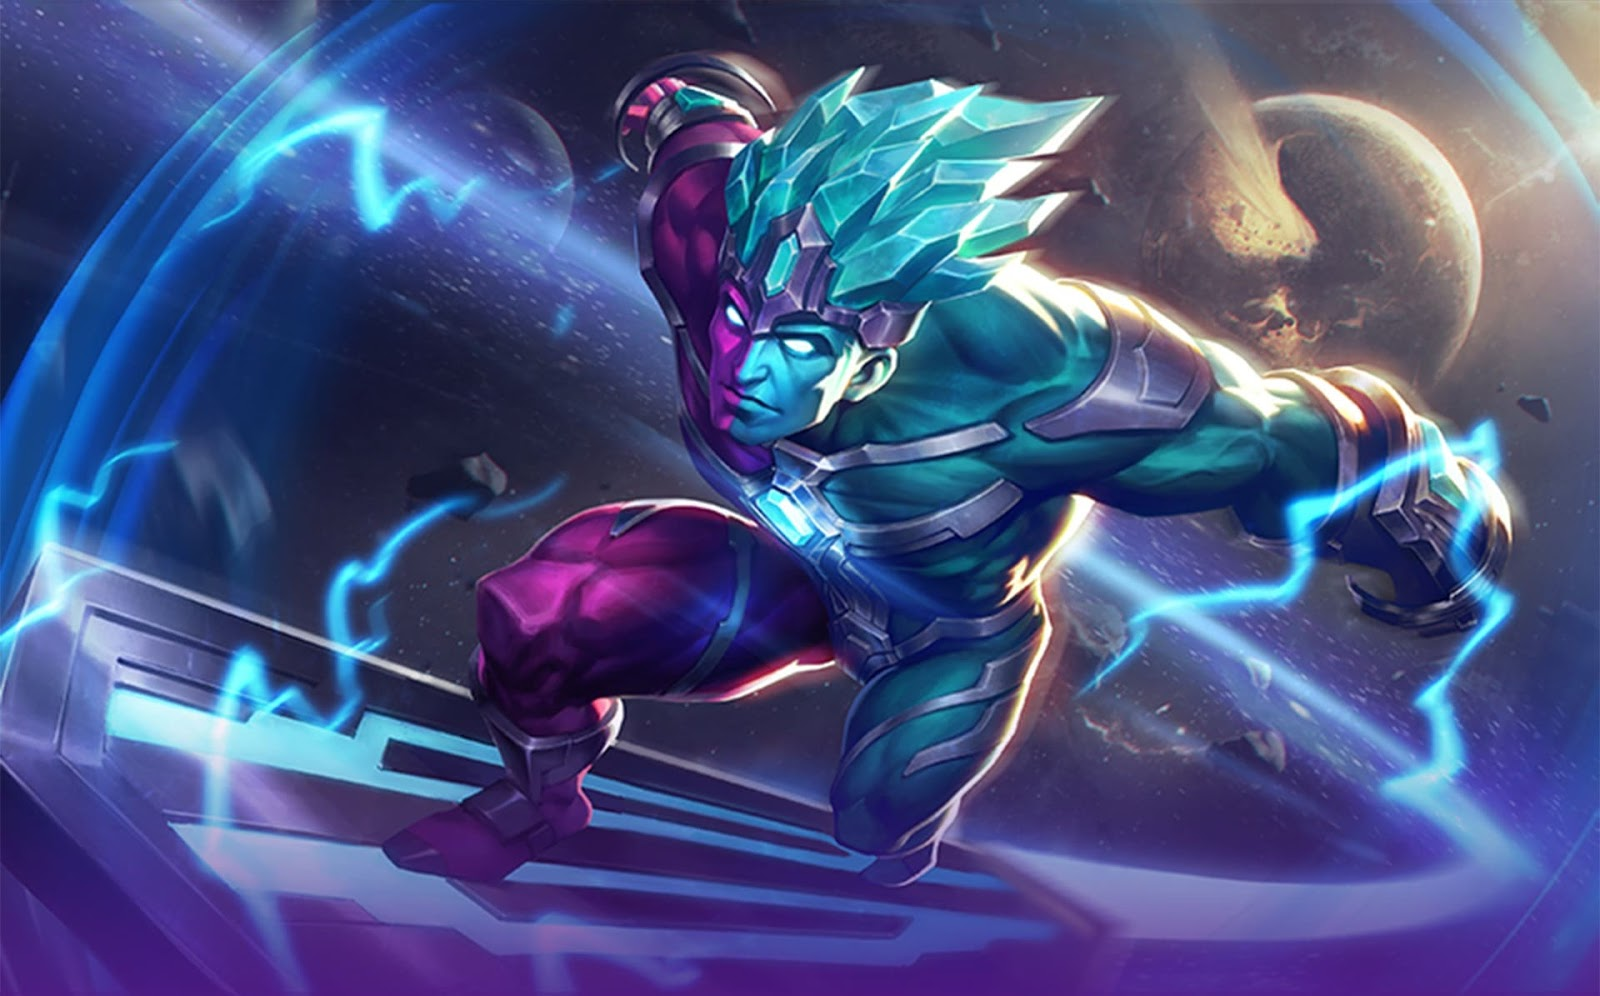 Wallpaper Gord Mystic Magician Skin Mobile Legends HD for PC